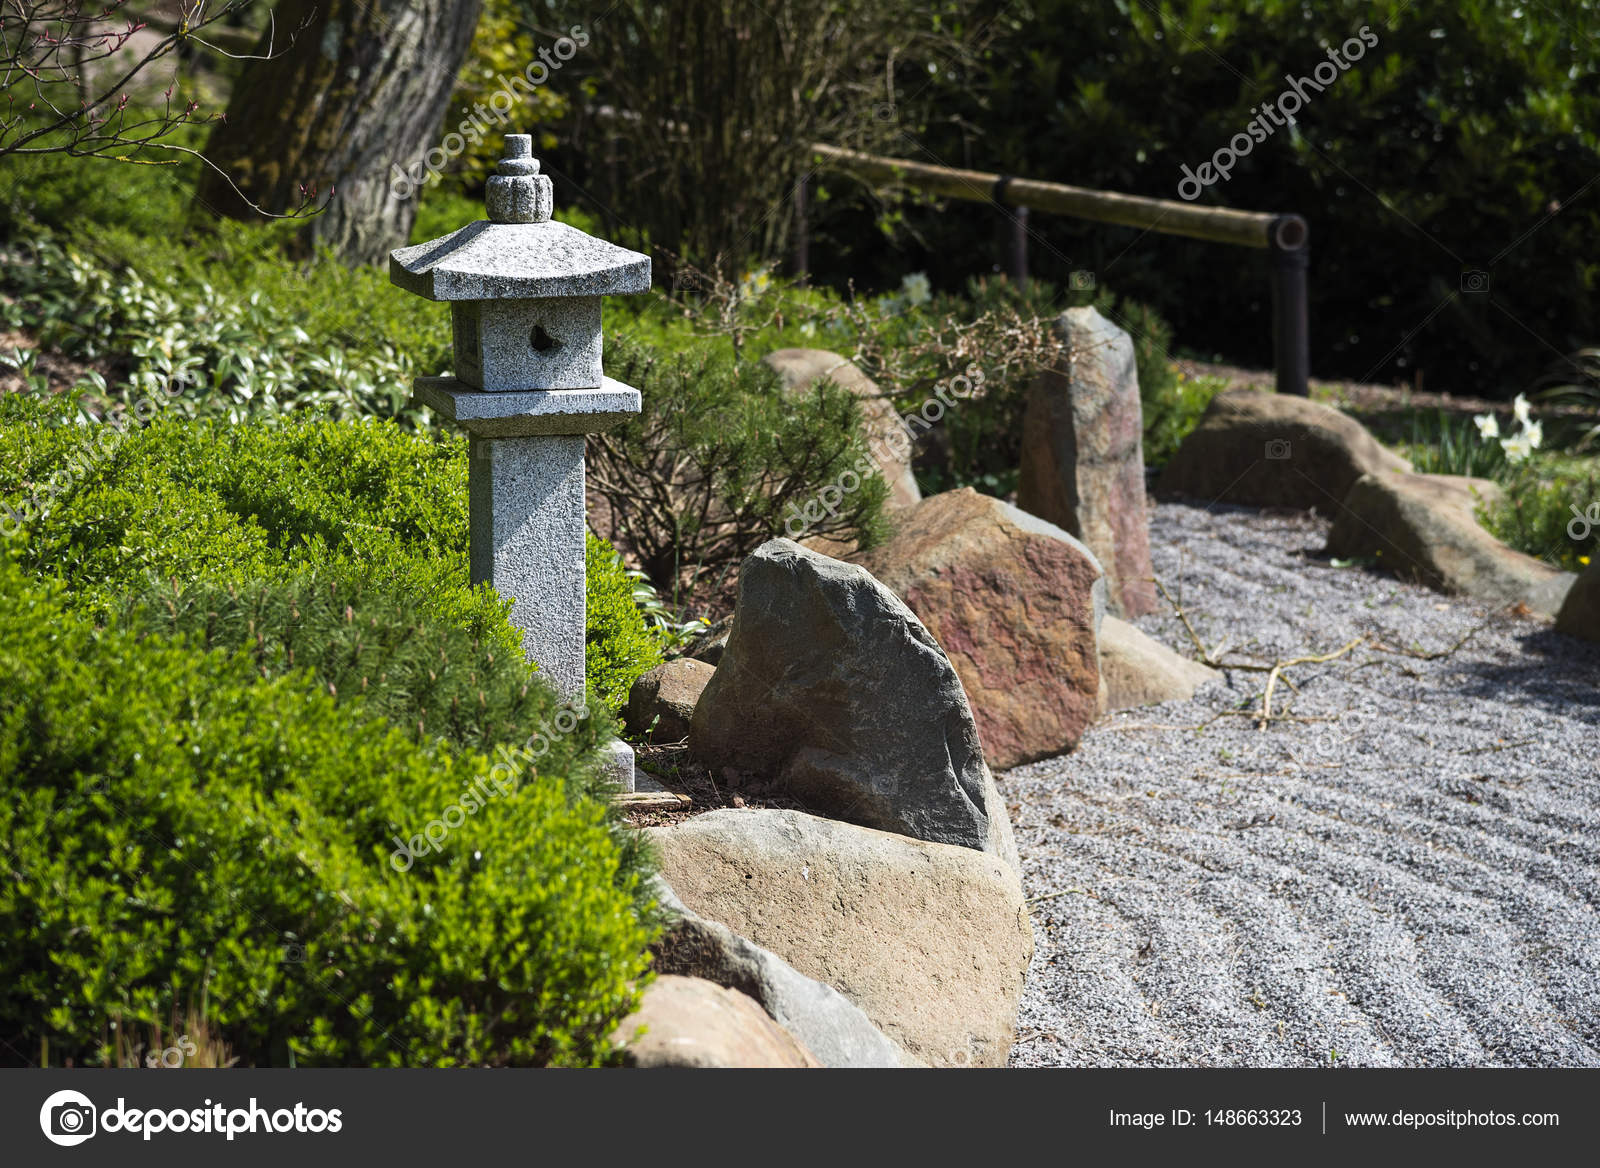 Stone lantern between evergreen plants, rocks and raked ... on shade garden landscape design, secret garden landscape design, zen garden photography, zen garden fountains, zen garden maintenance, cottage garden landscape design, zen garden waterfalls, vegetable garden landscape design, zen garden hardscape, flower garden landscape design, english garden landscape design, spanish garden landscape design, butterfly garden landscape design, zen garden fencing, roof garden landscape design, rock garden landscape design, zen garden sculpture, meditation garden landscape design, kitchen garden landscape design, rose garden landscape design,